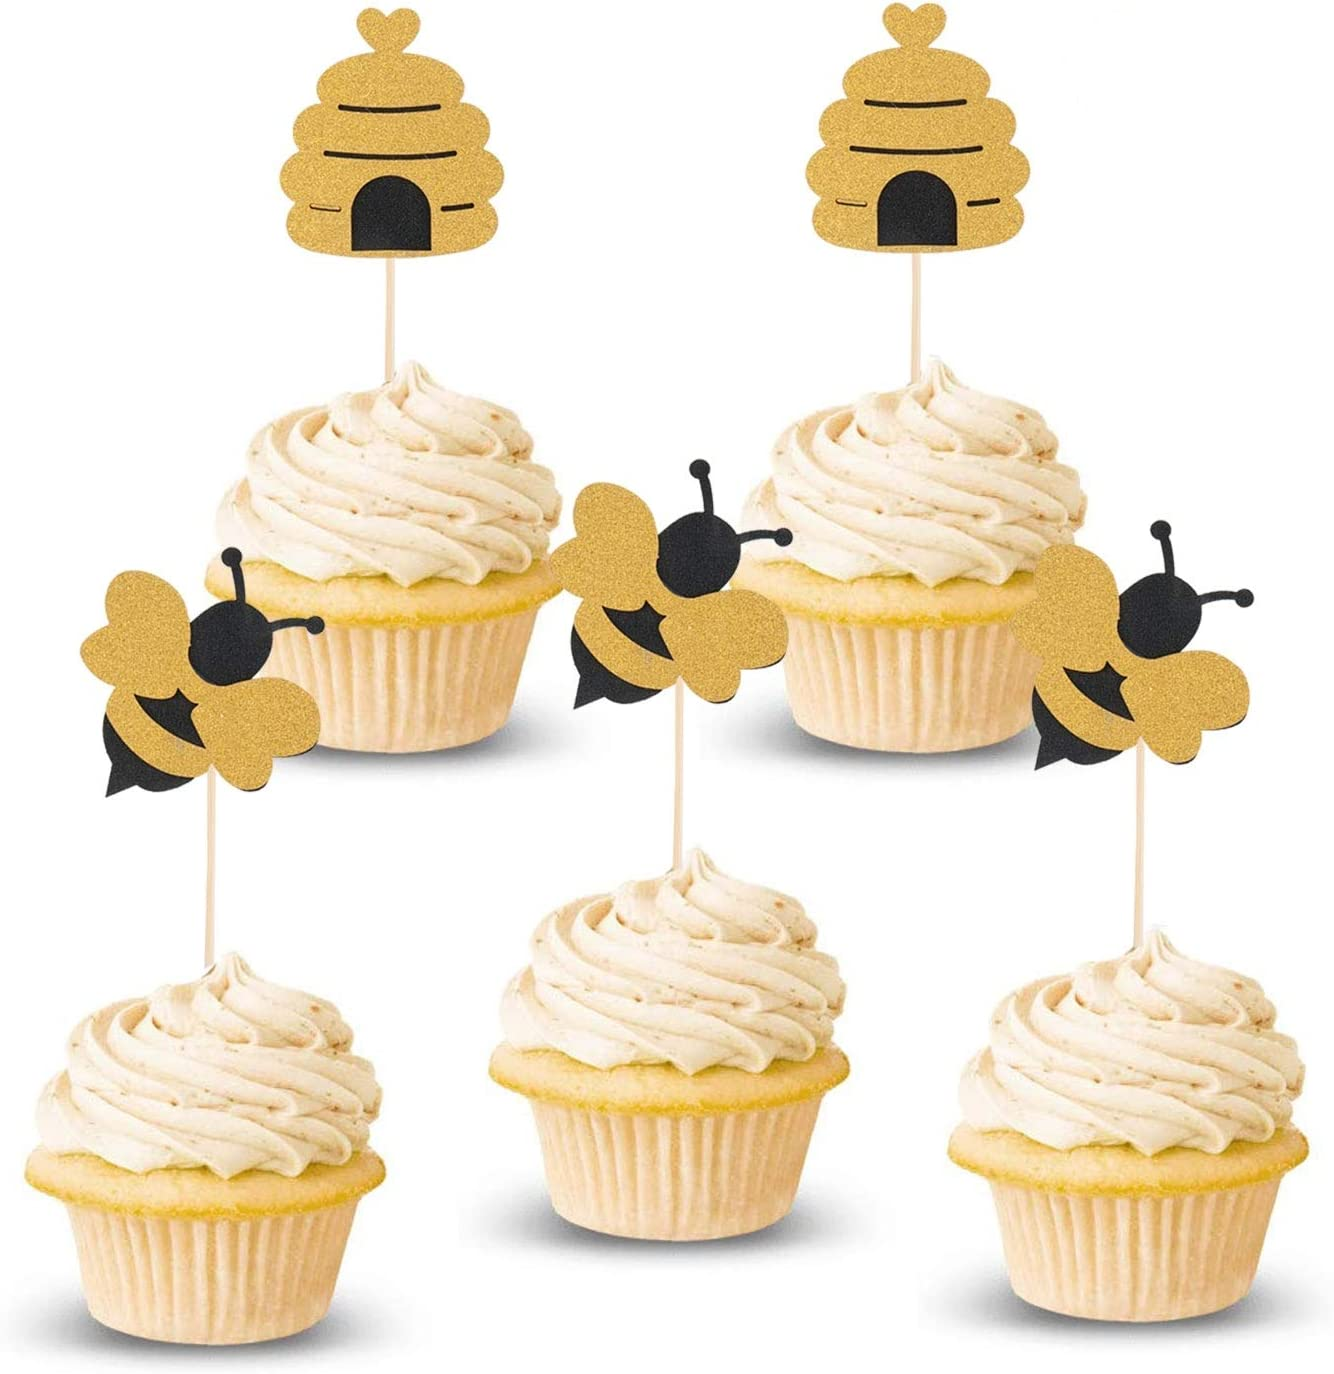 Lauren 48 Pcs Glitter Bumble Bee Cupcake Toppers Bee Gender Reveal Cupcake Toppers for Baby Shower Birthday Party Decor